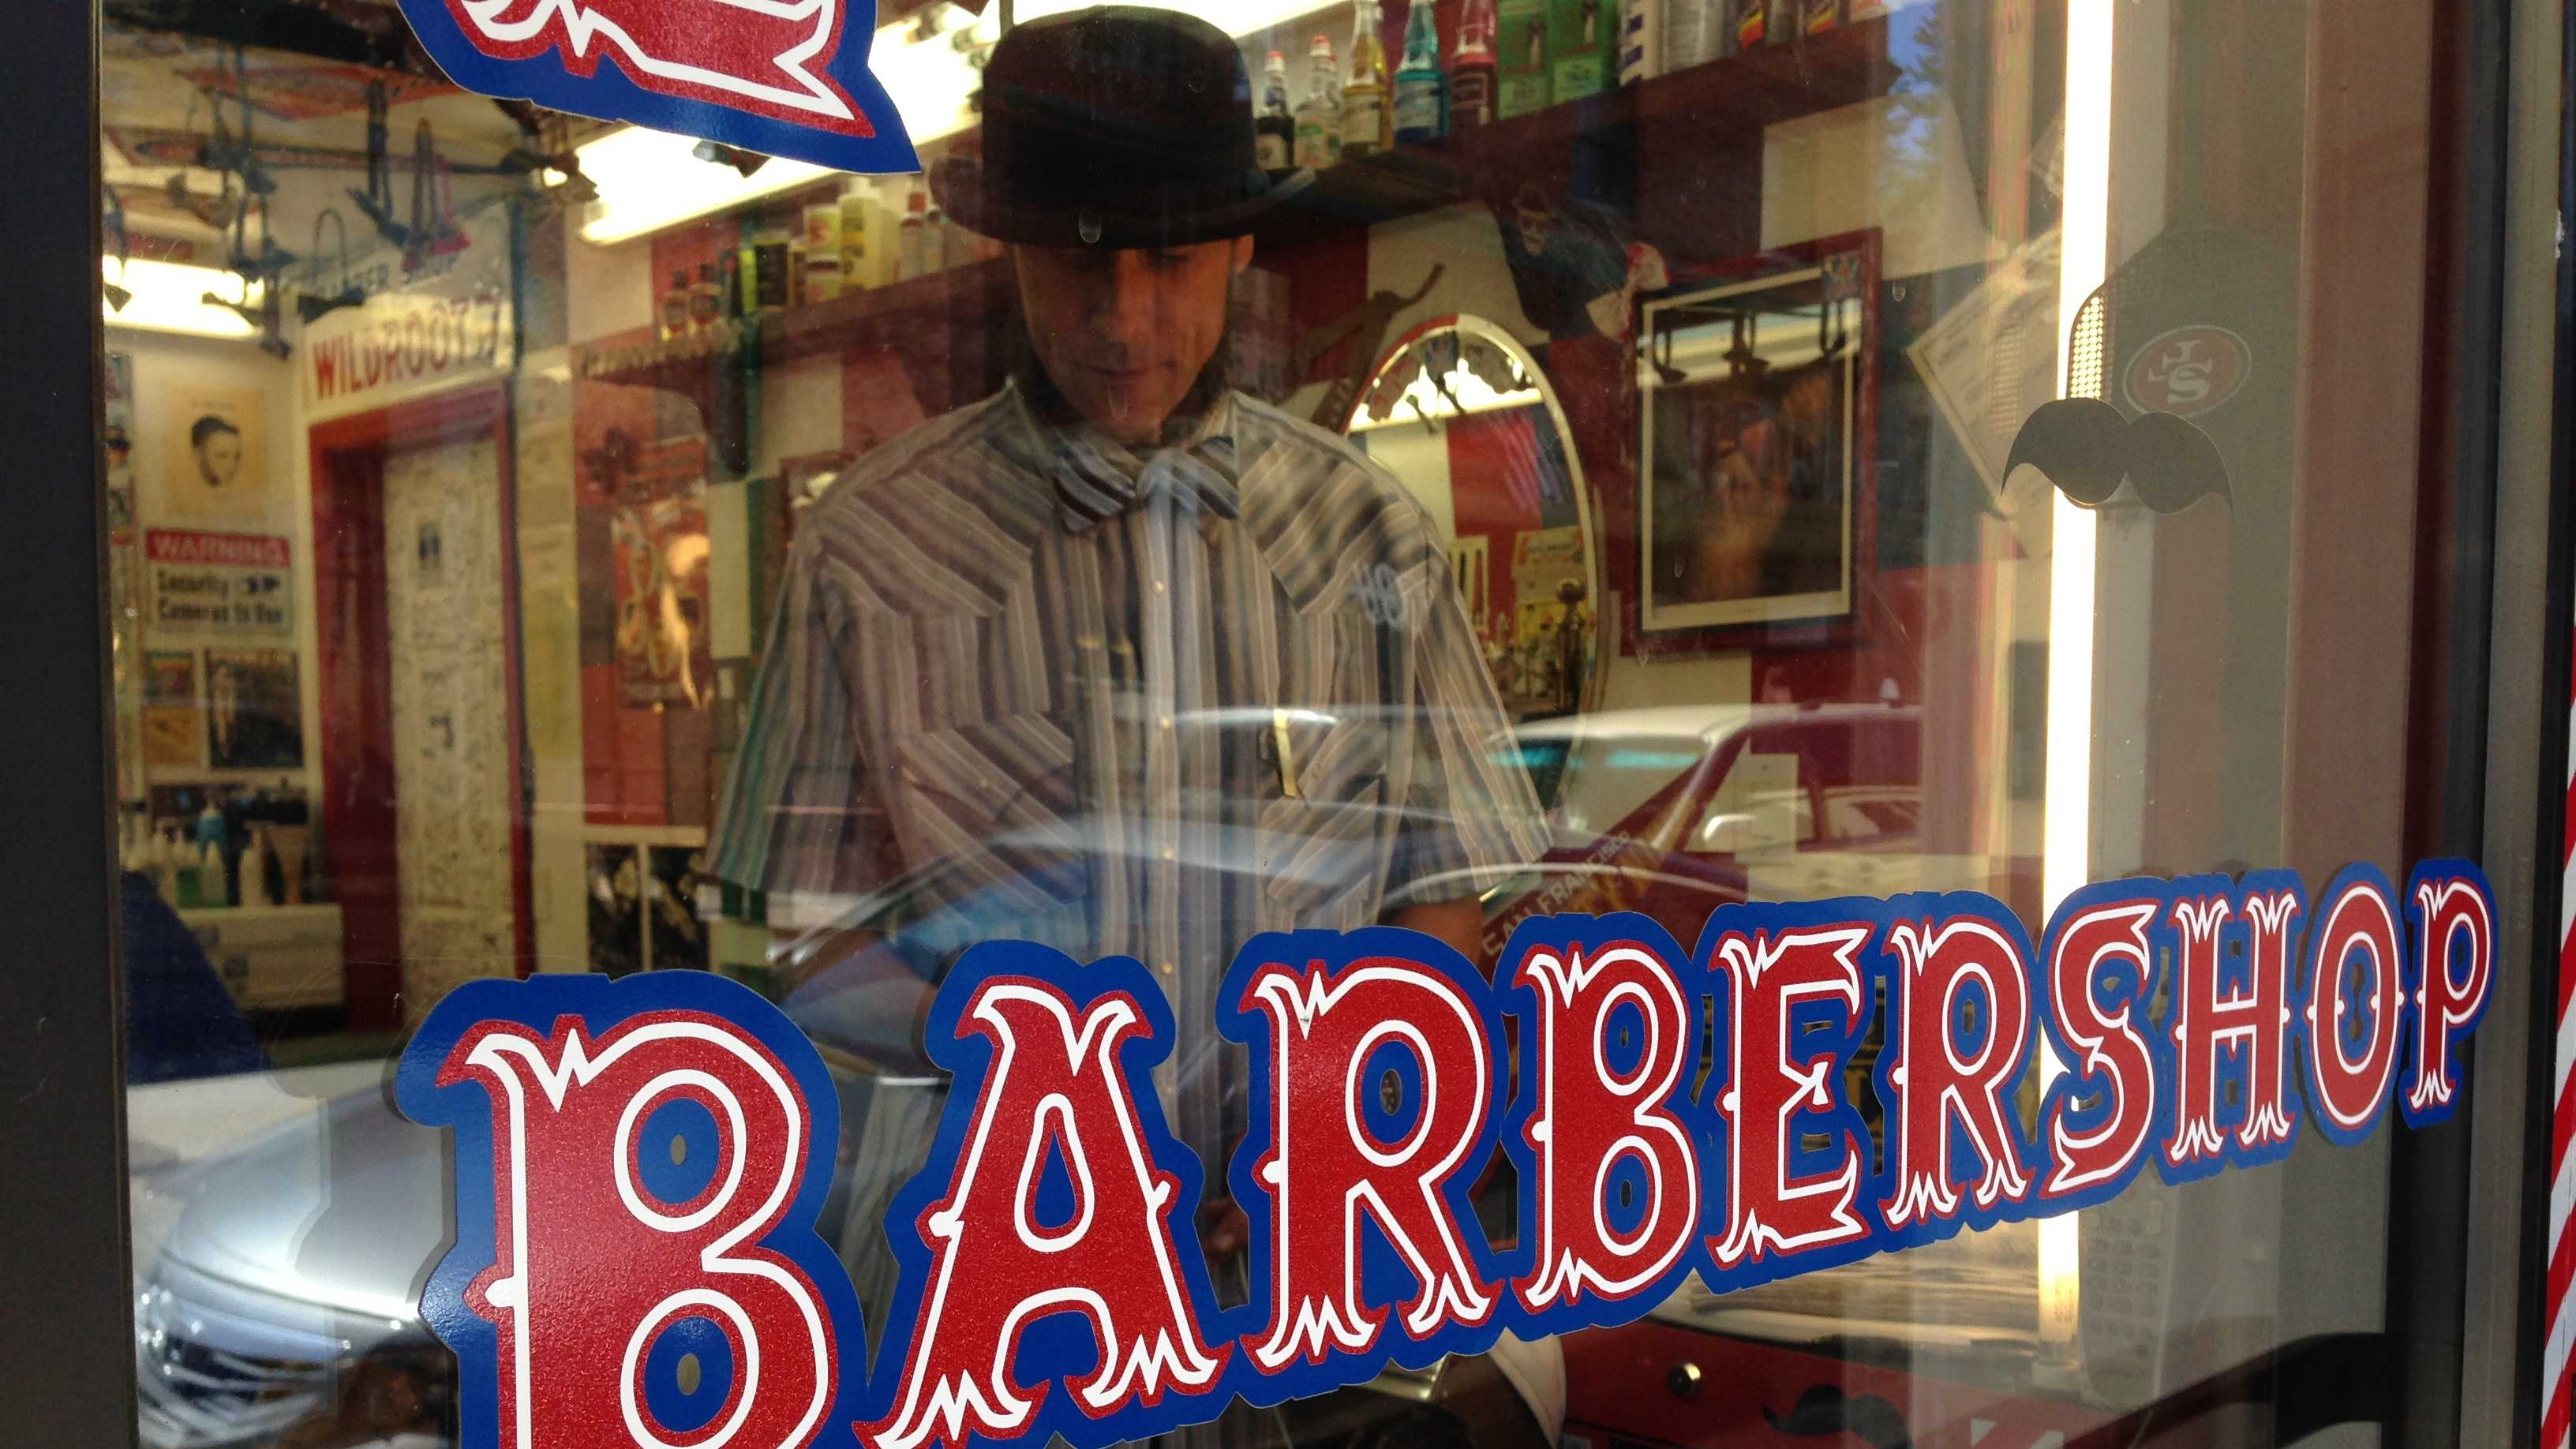 KCRA photographer Mike Rhinehart caught up with the Bowtie Barber of Placerville, who two years ago opened up his businesses with the goal of giving people a great cut and even better customer service.